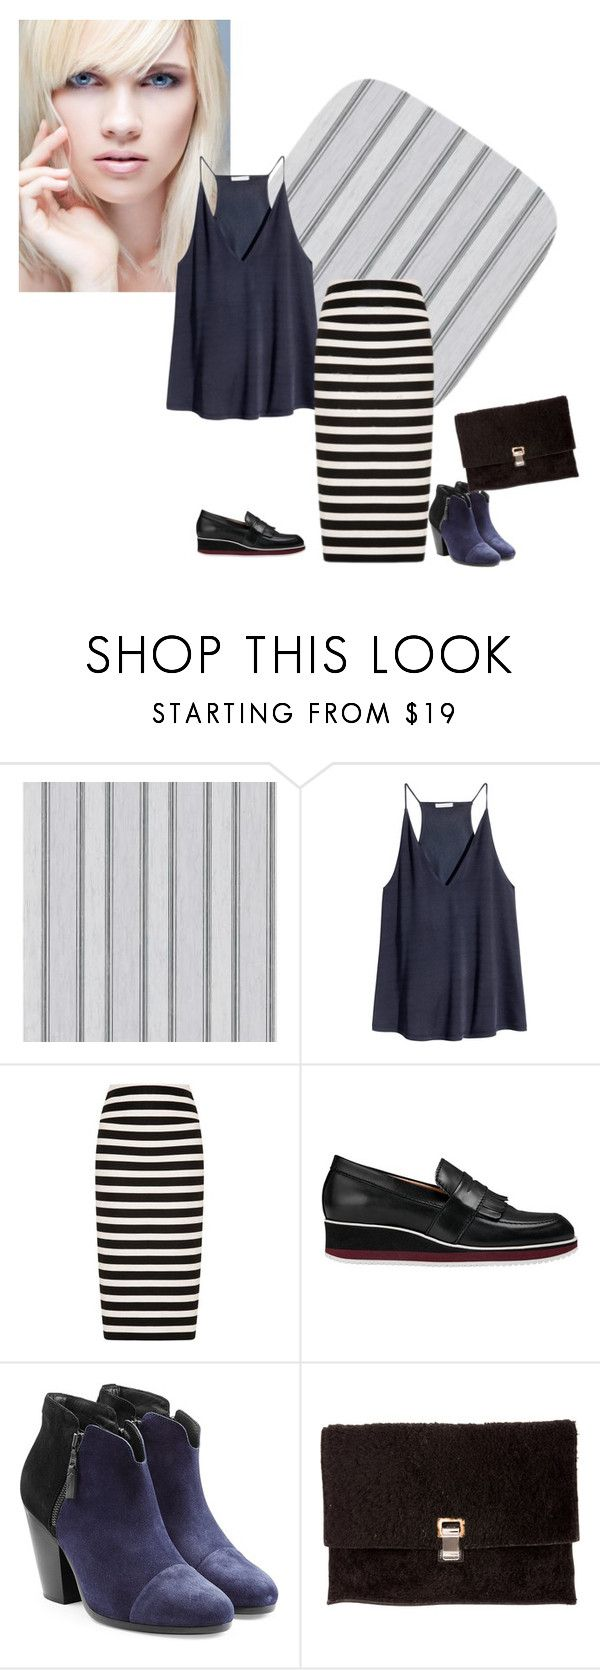 """stripe 8"" by ajriyaf on Polyvore featuring H&M, Noon by Noor, Whistles, rag & bone and Proenza Schouler"